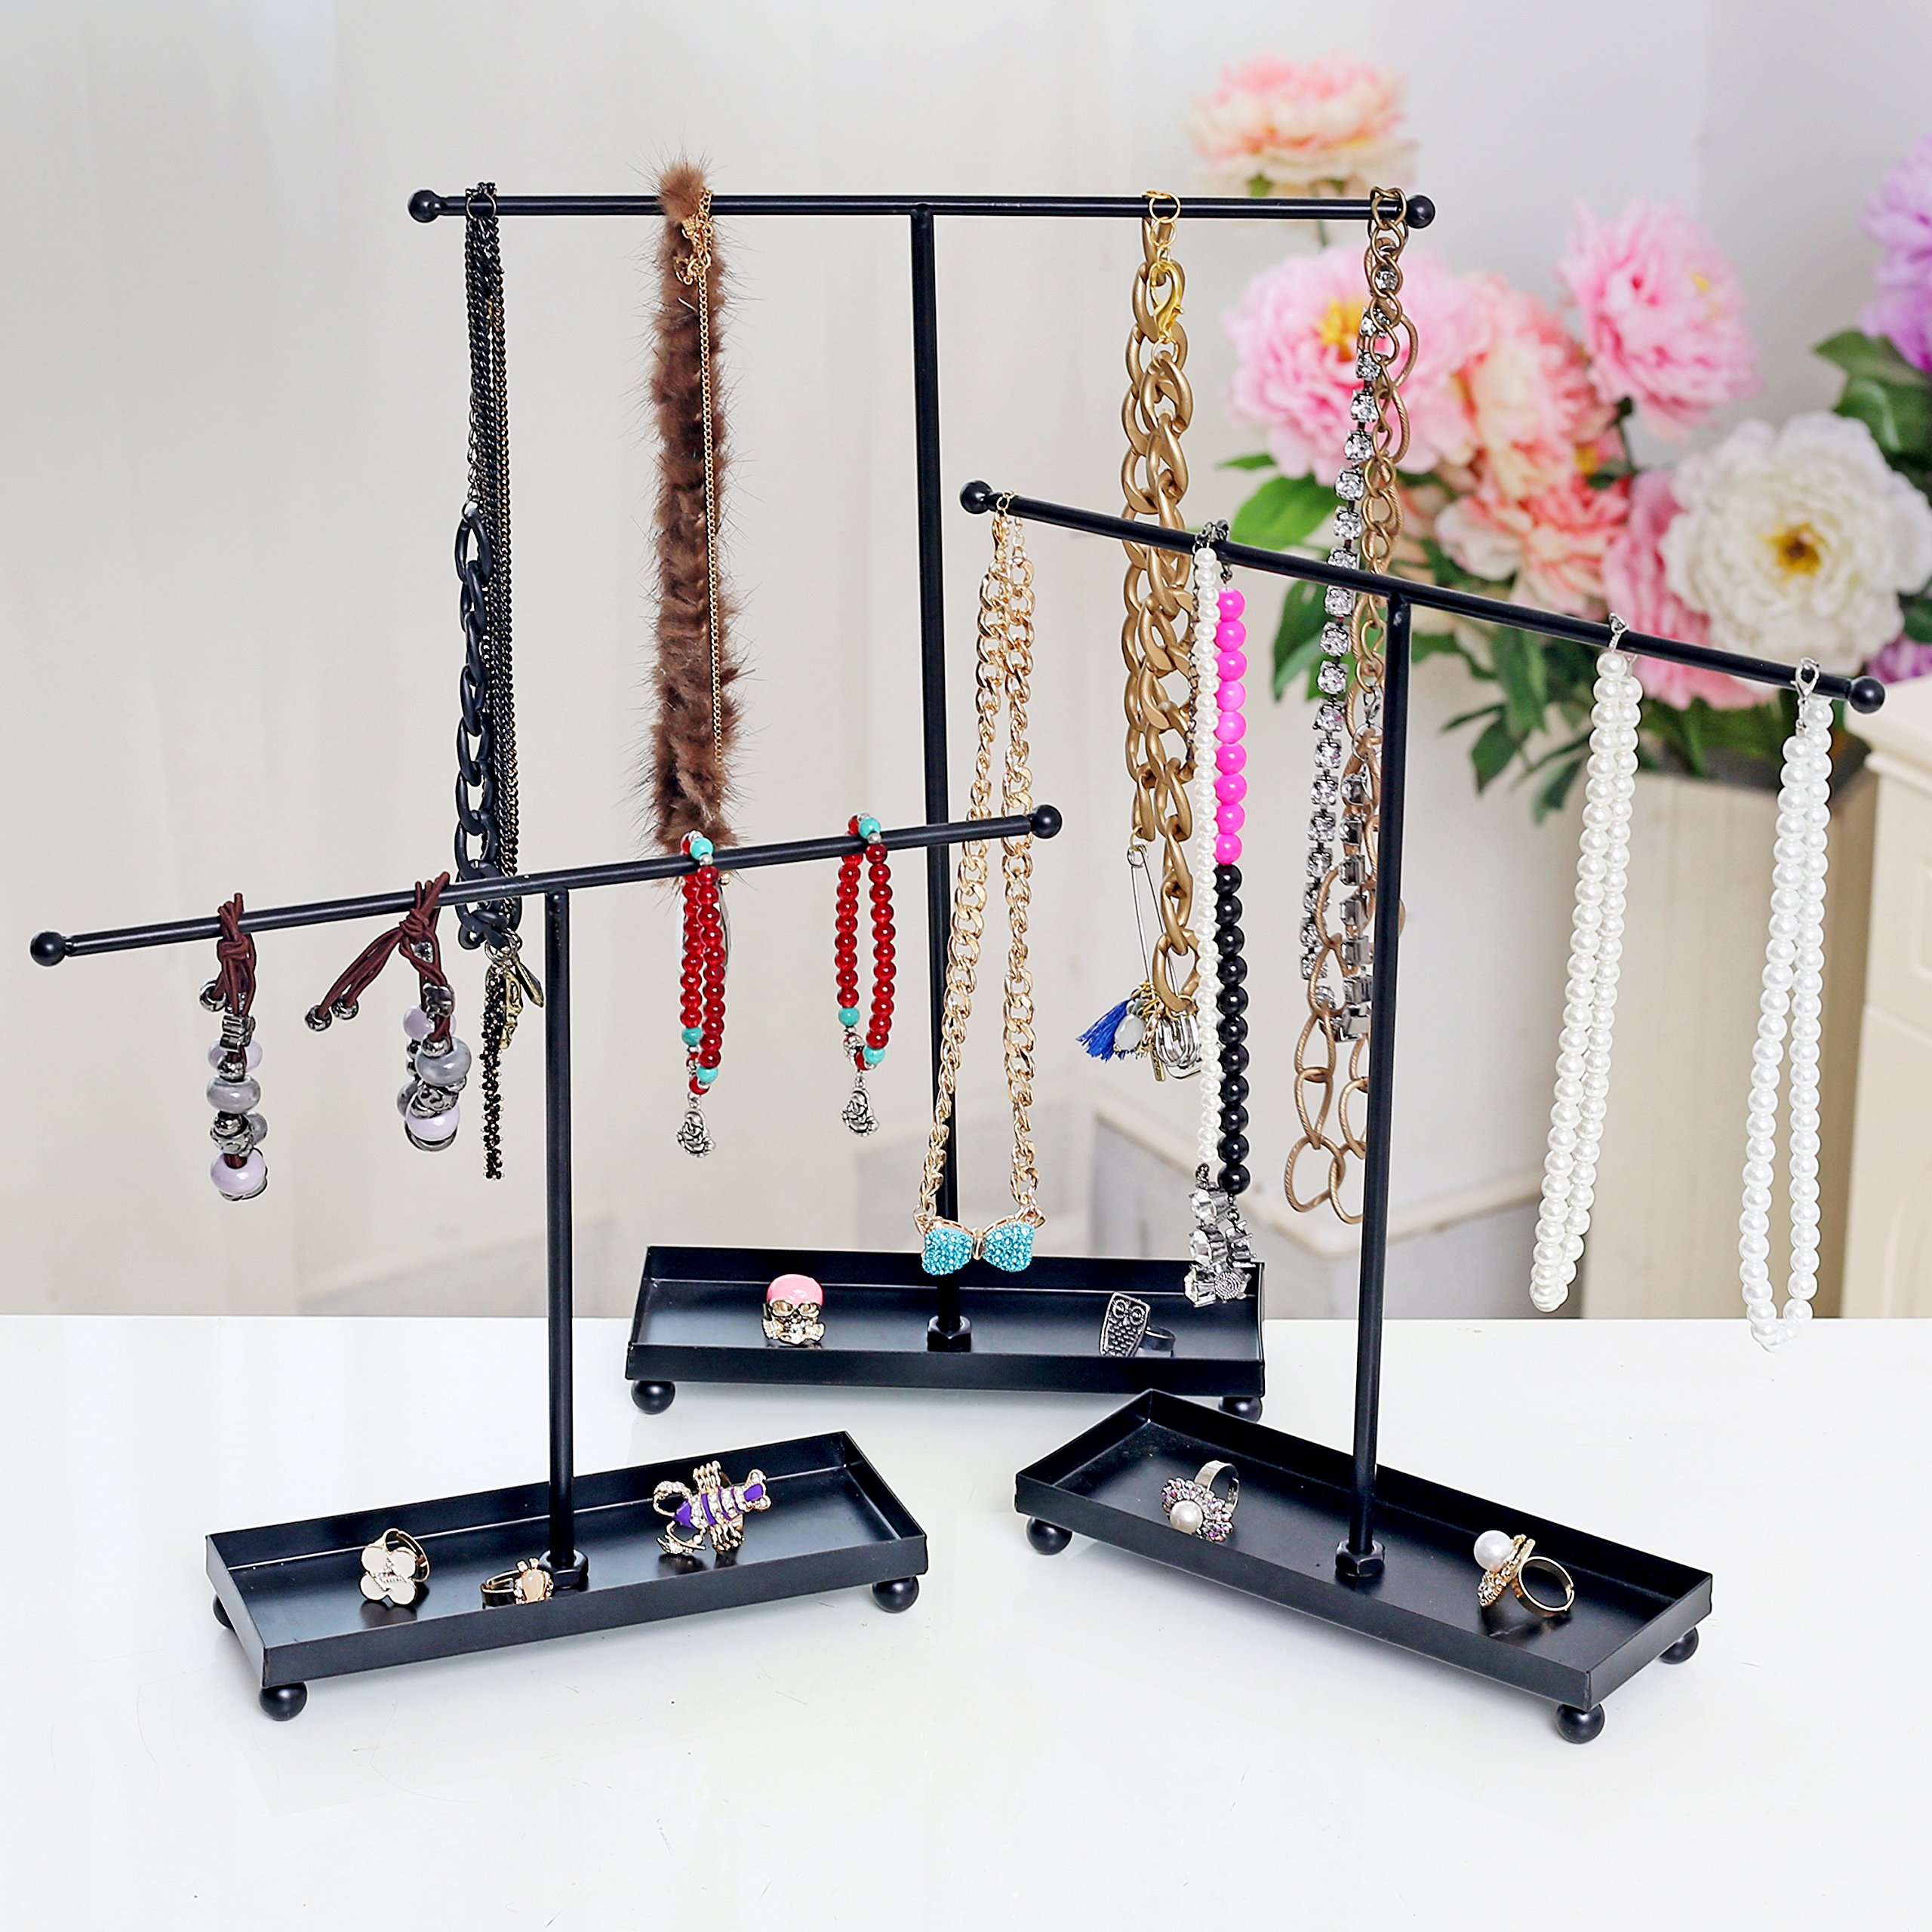 Set of 3 Modern Jewelry Organizers, Tabletop Bracelet & Necklace Hangers w/ Ring Dish, Black